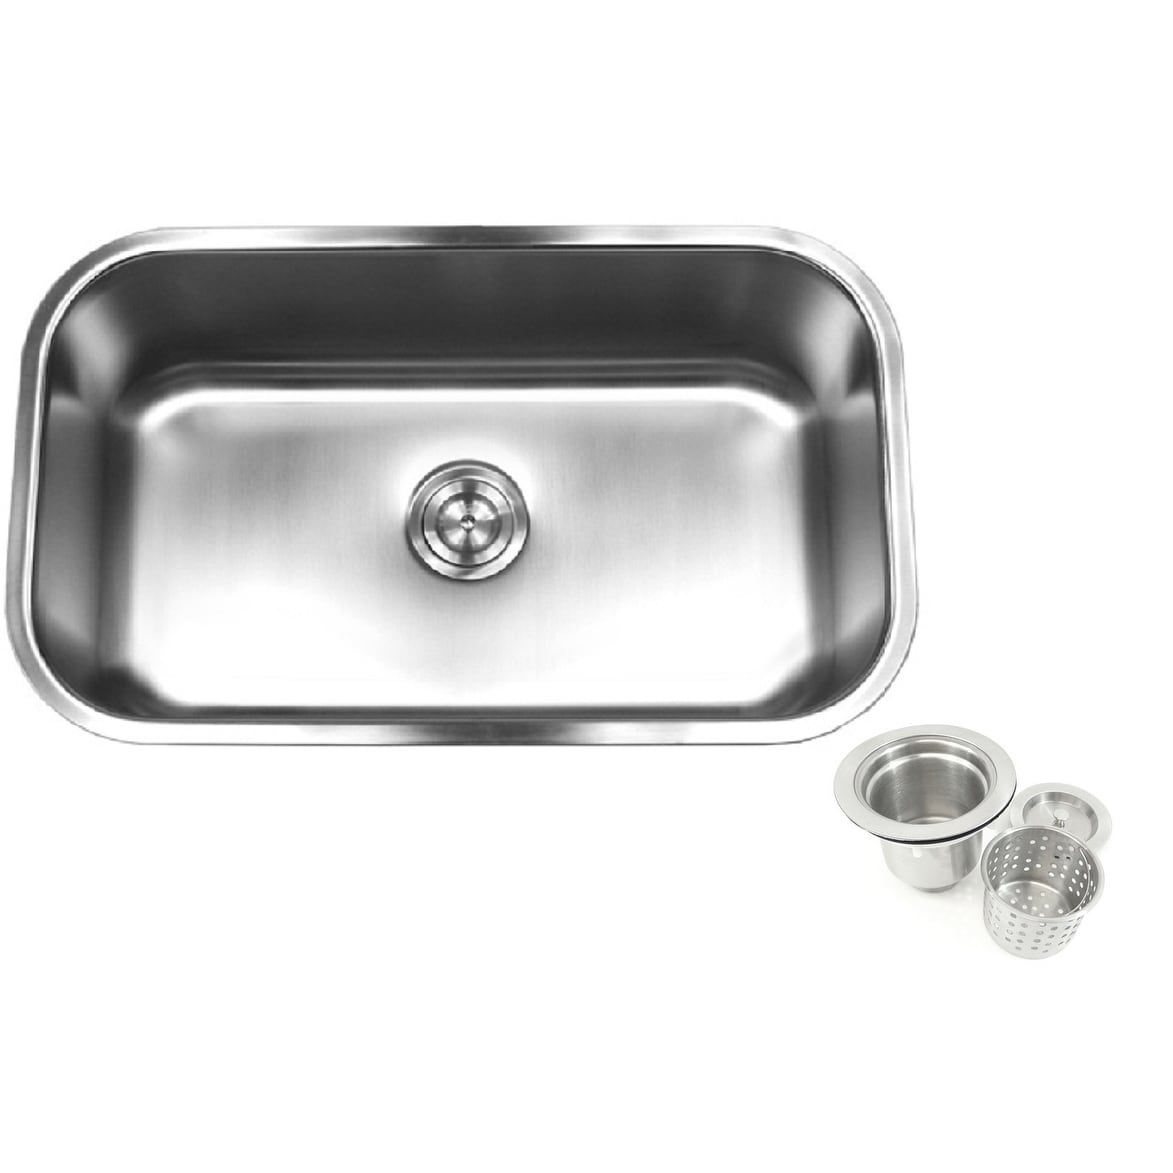 18 gauge t 304 stainless steel undermount 31 1 2 inch single bowl kitchen sink 10 inch deep with deluxe lift out strainer